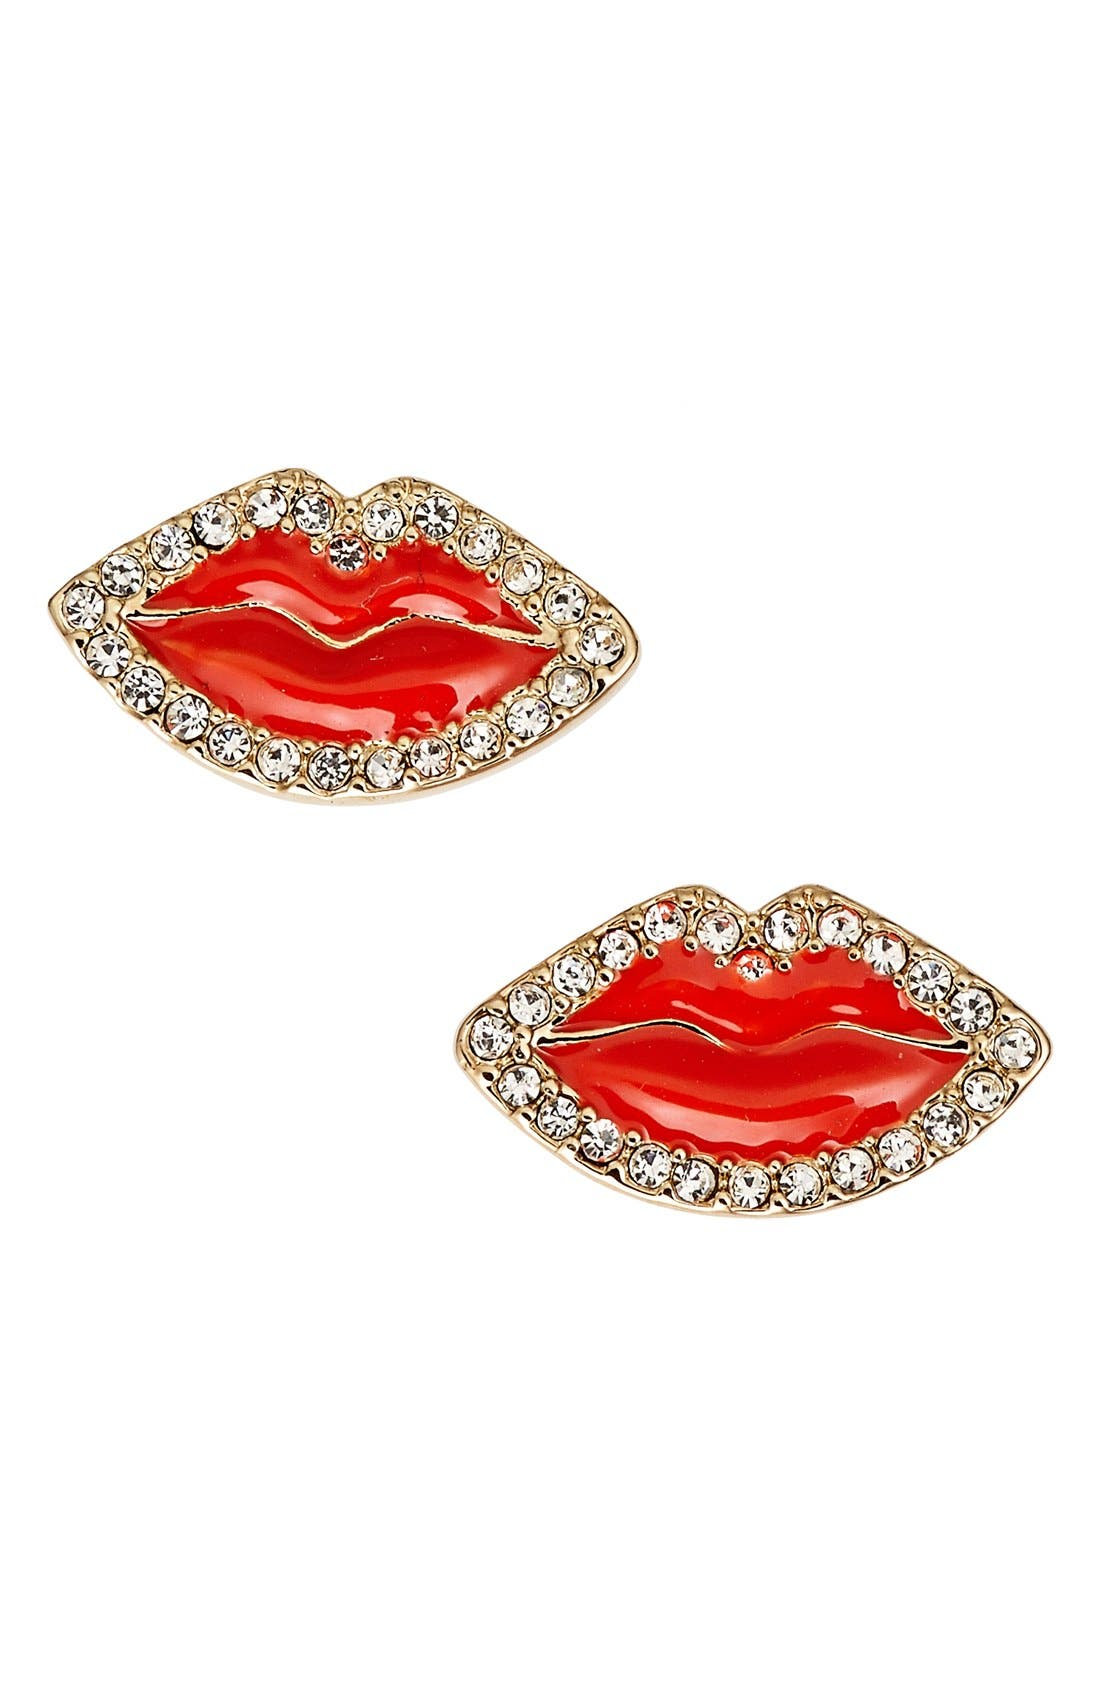 Kate Spade New York Love List Lip Stud Earrings Nordstrom